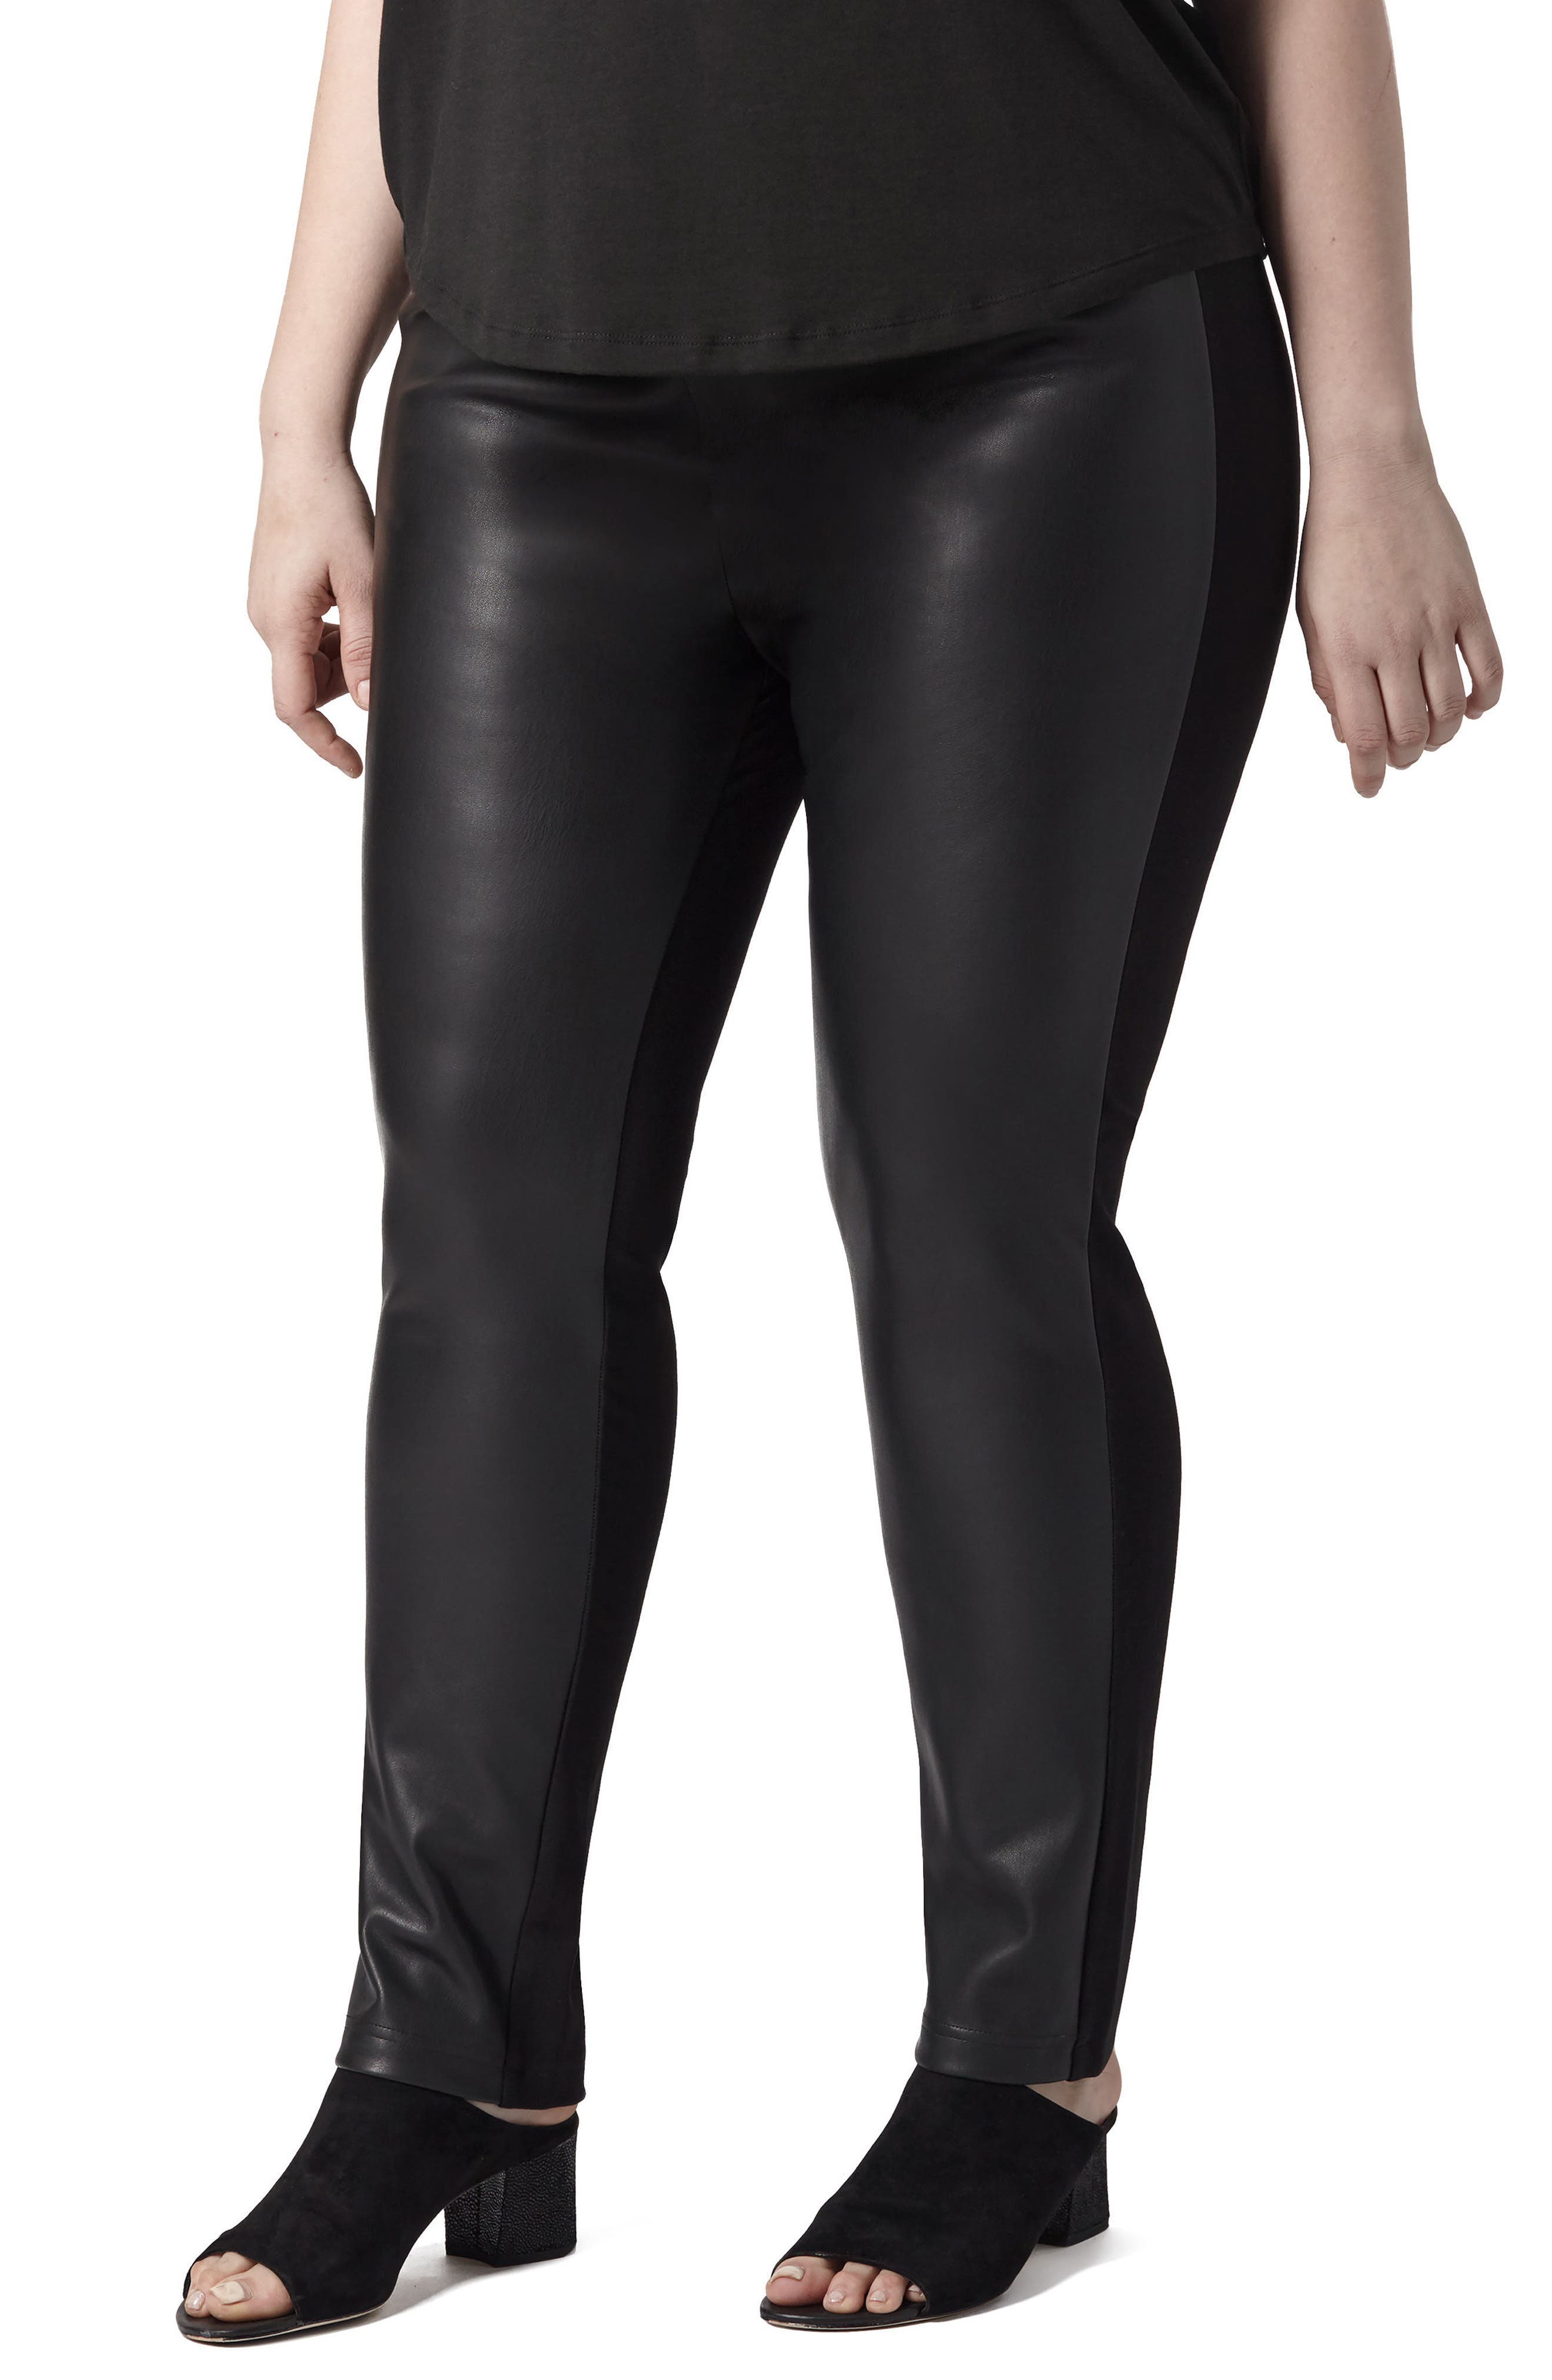 Main Image - UNIVERSAL STANDARD Potenza Faux Leather Pants (Plus Size)